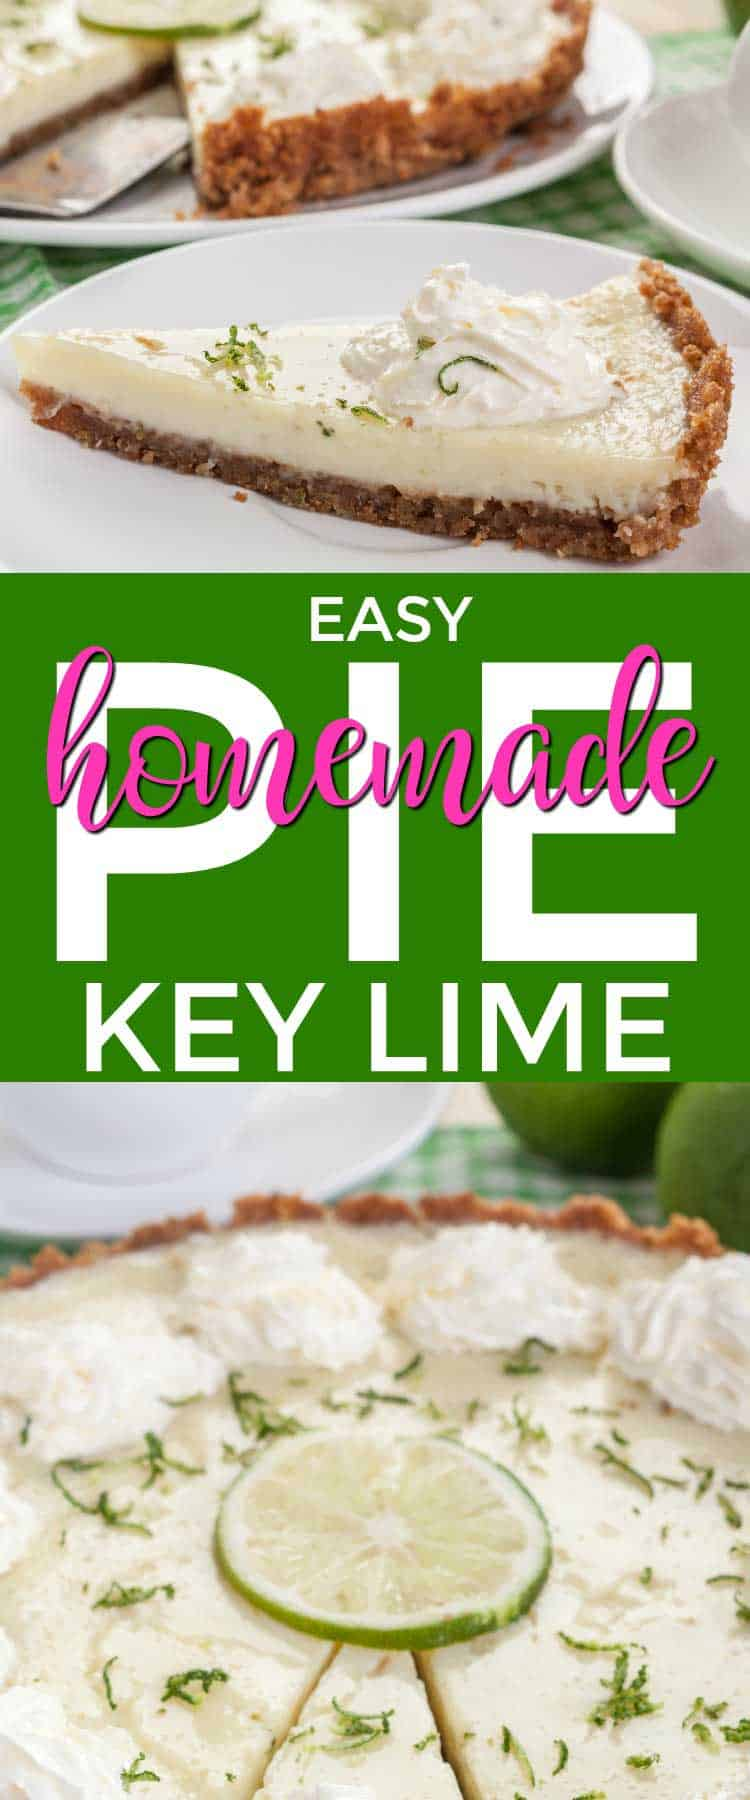 A Real Key Lime Pie recipe that's melt in your mouth delicious and BIG on Flavor! A simple recipe that is no bake, whips up in no time at all, and will have everyone asking for the recipe! Key Lime Pie is THE #1 pie you see served in Diners in the South! #keylimepie #auntsally #keywest #keylimes #bestdesserts #nobakepies #easypierecipes #ilovepie #homemadekeylimepie